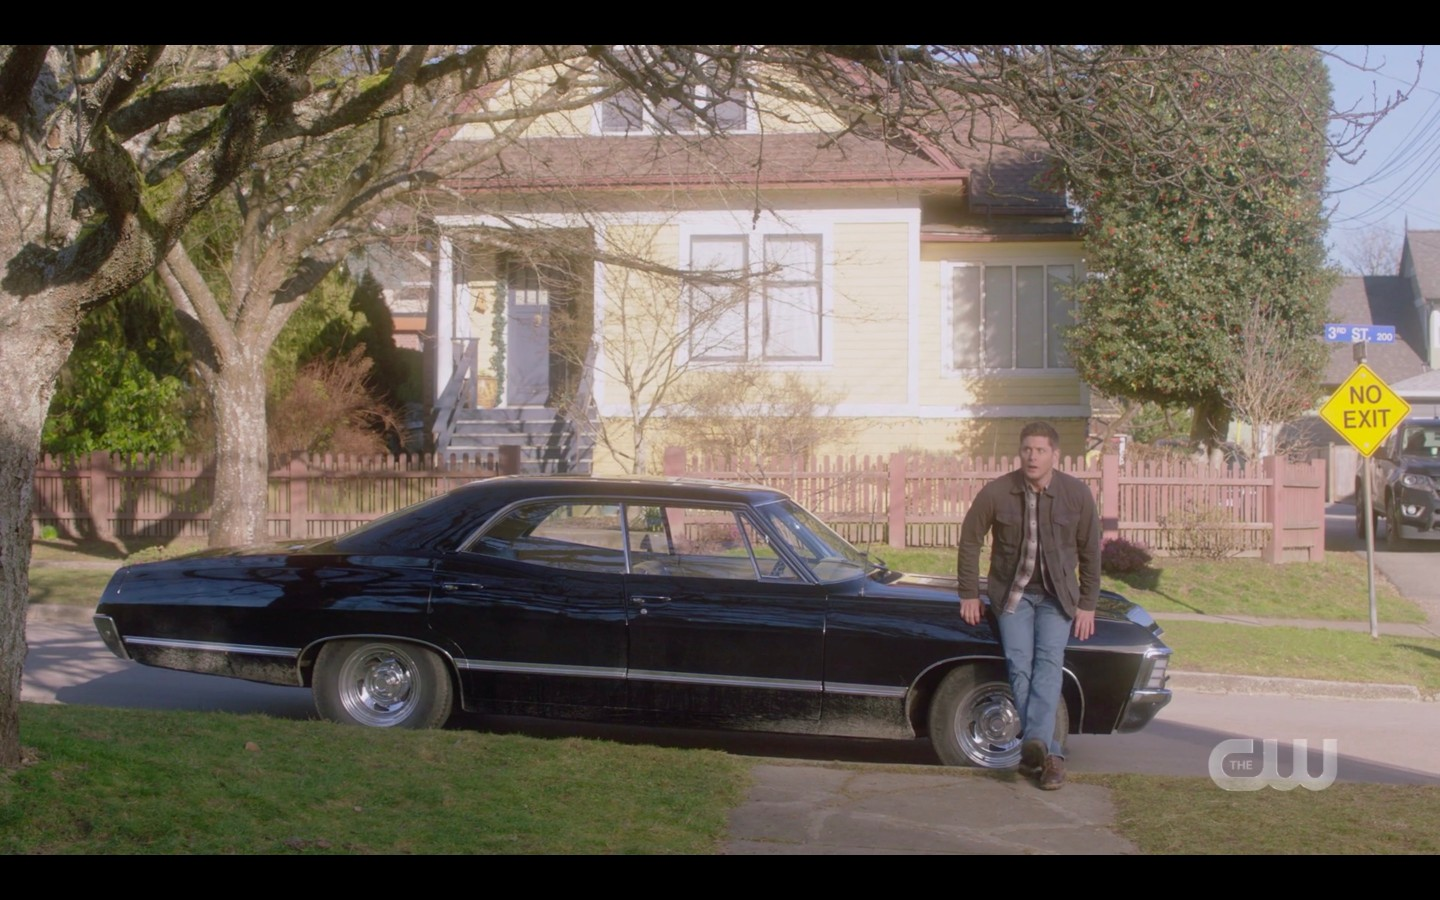 Dean Winchester scootched away from snake on car spn 1415